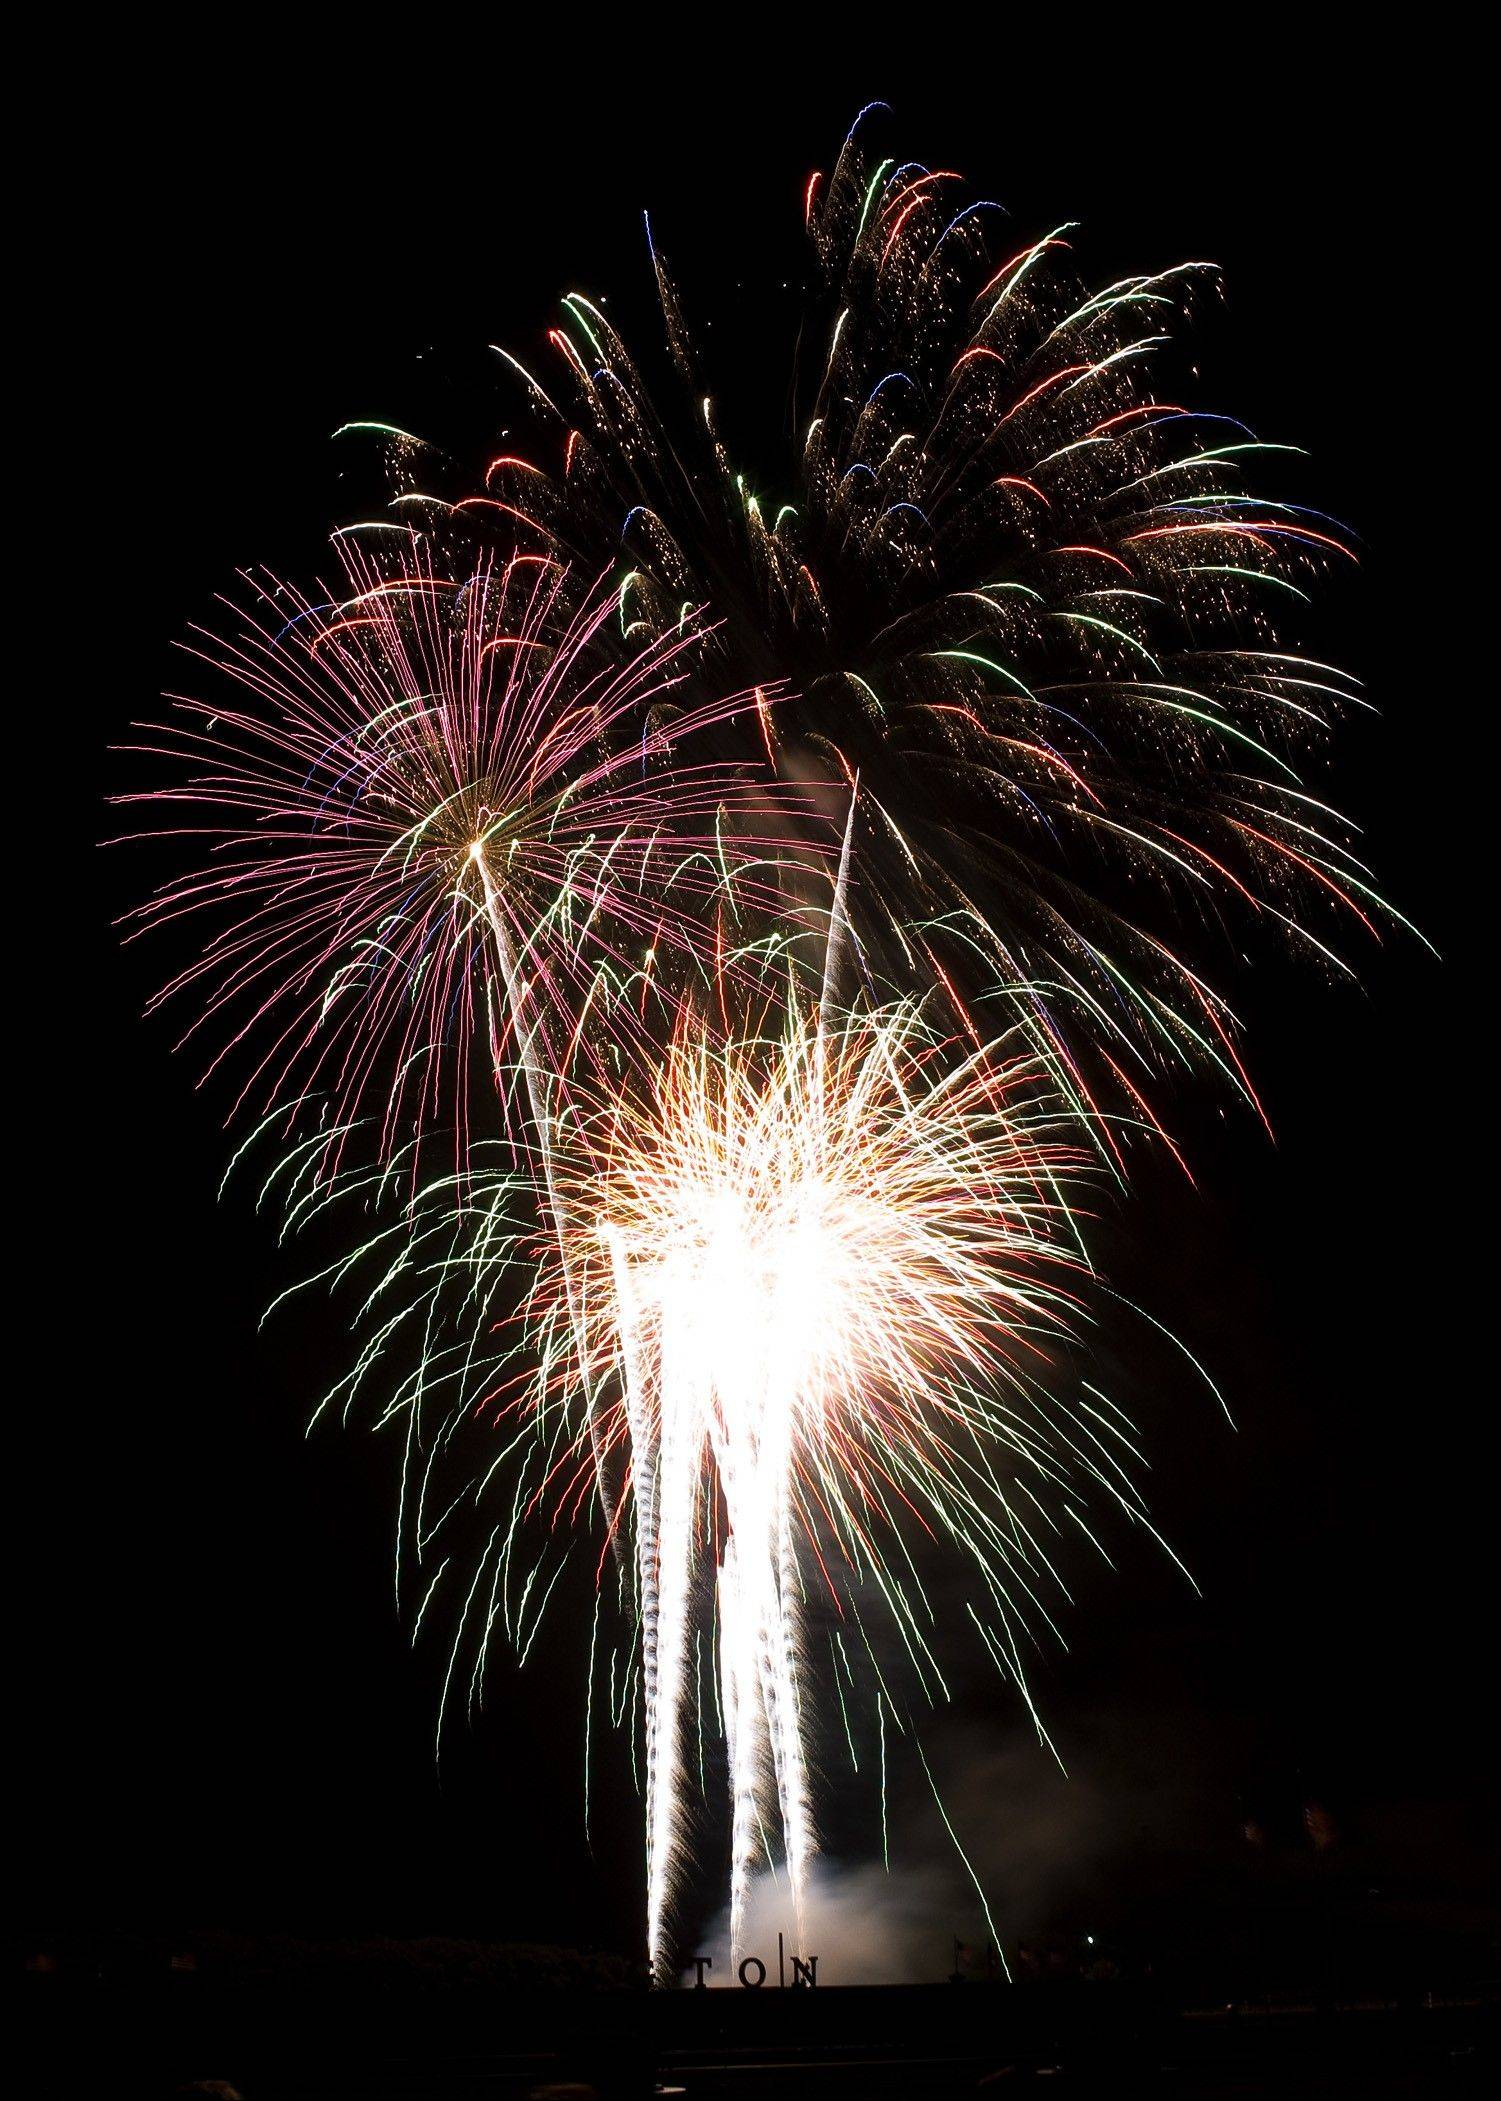 Fox River Grove officials have moved their Fourth of July fireworks show to September, citing positive feedback from residents about the new date. In 2012, a drought forced the village to move its show from July to September and the new date apparently worked out for many residents.